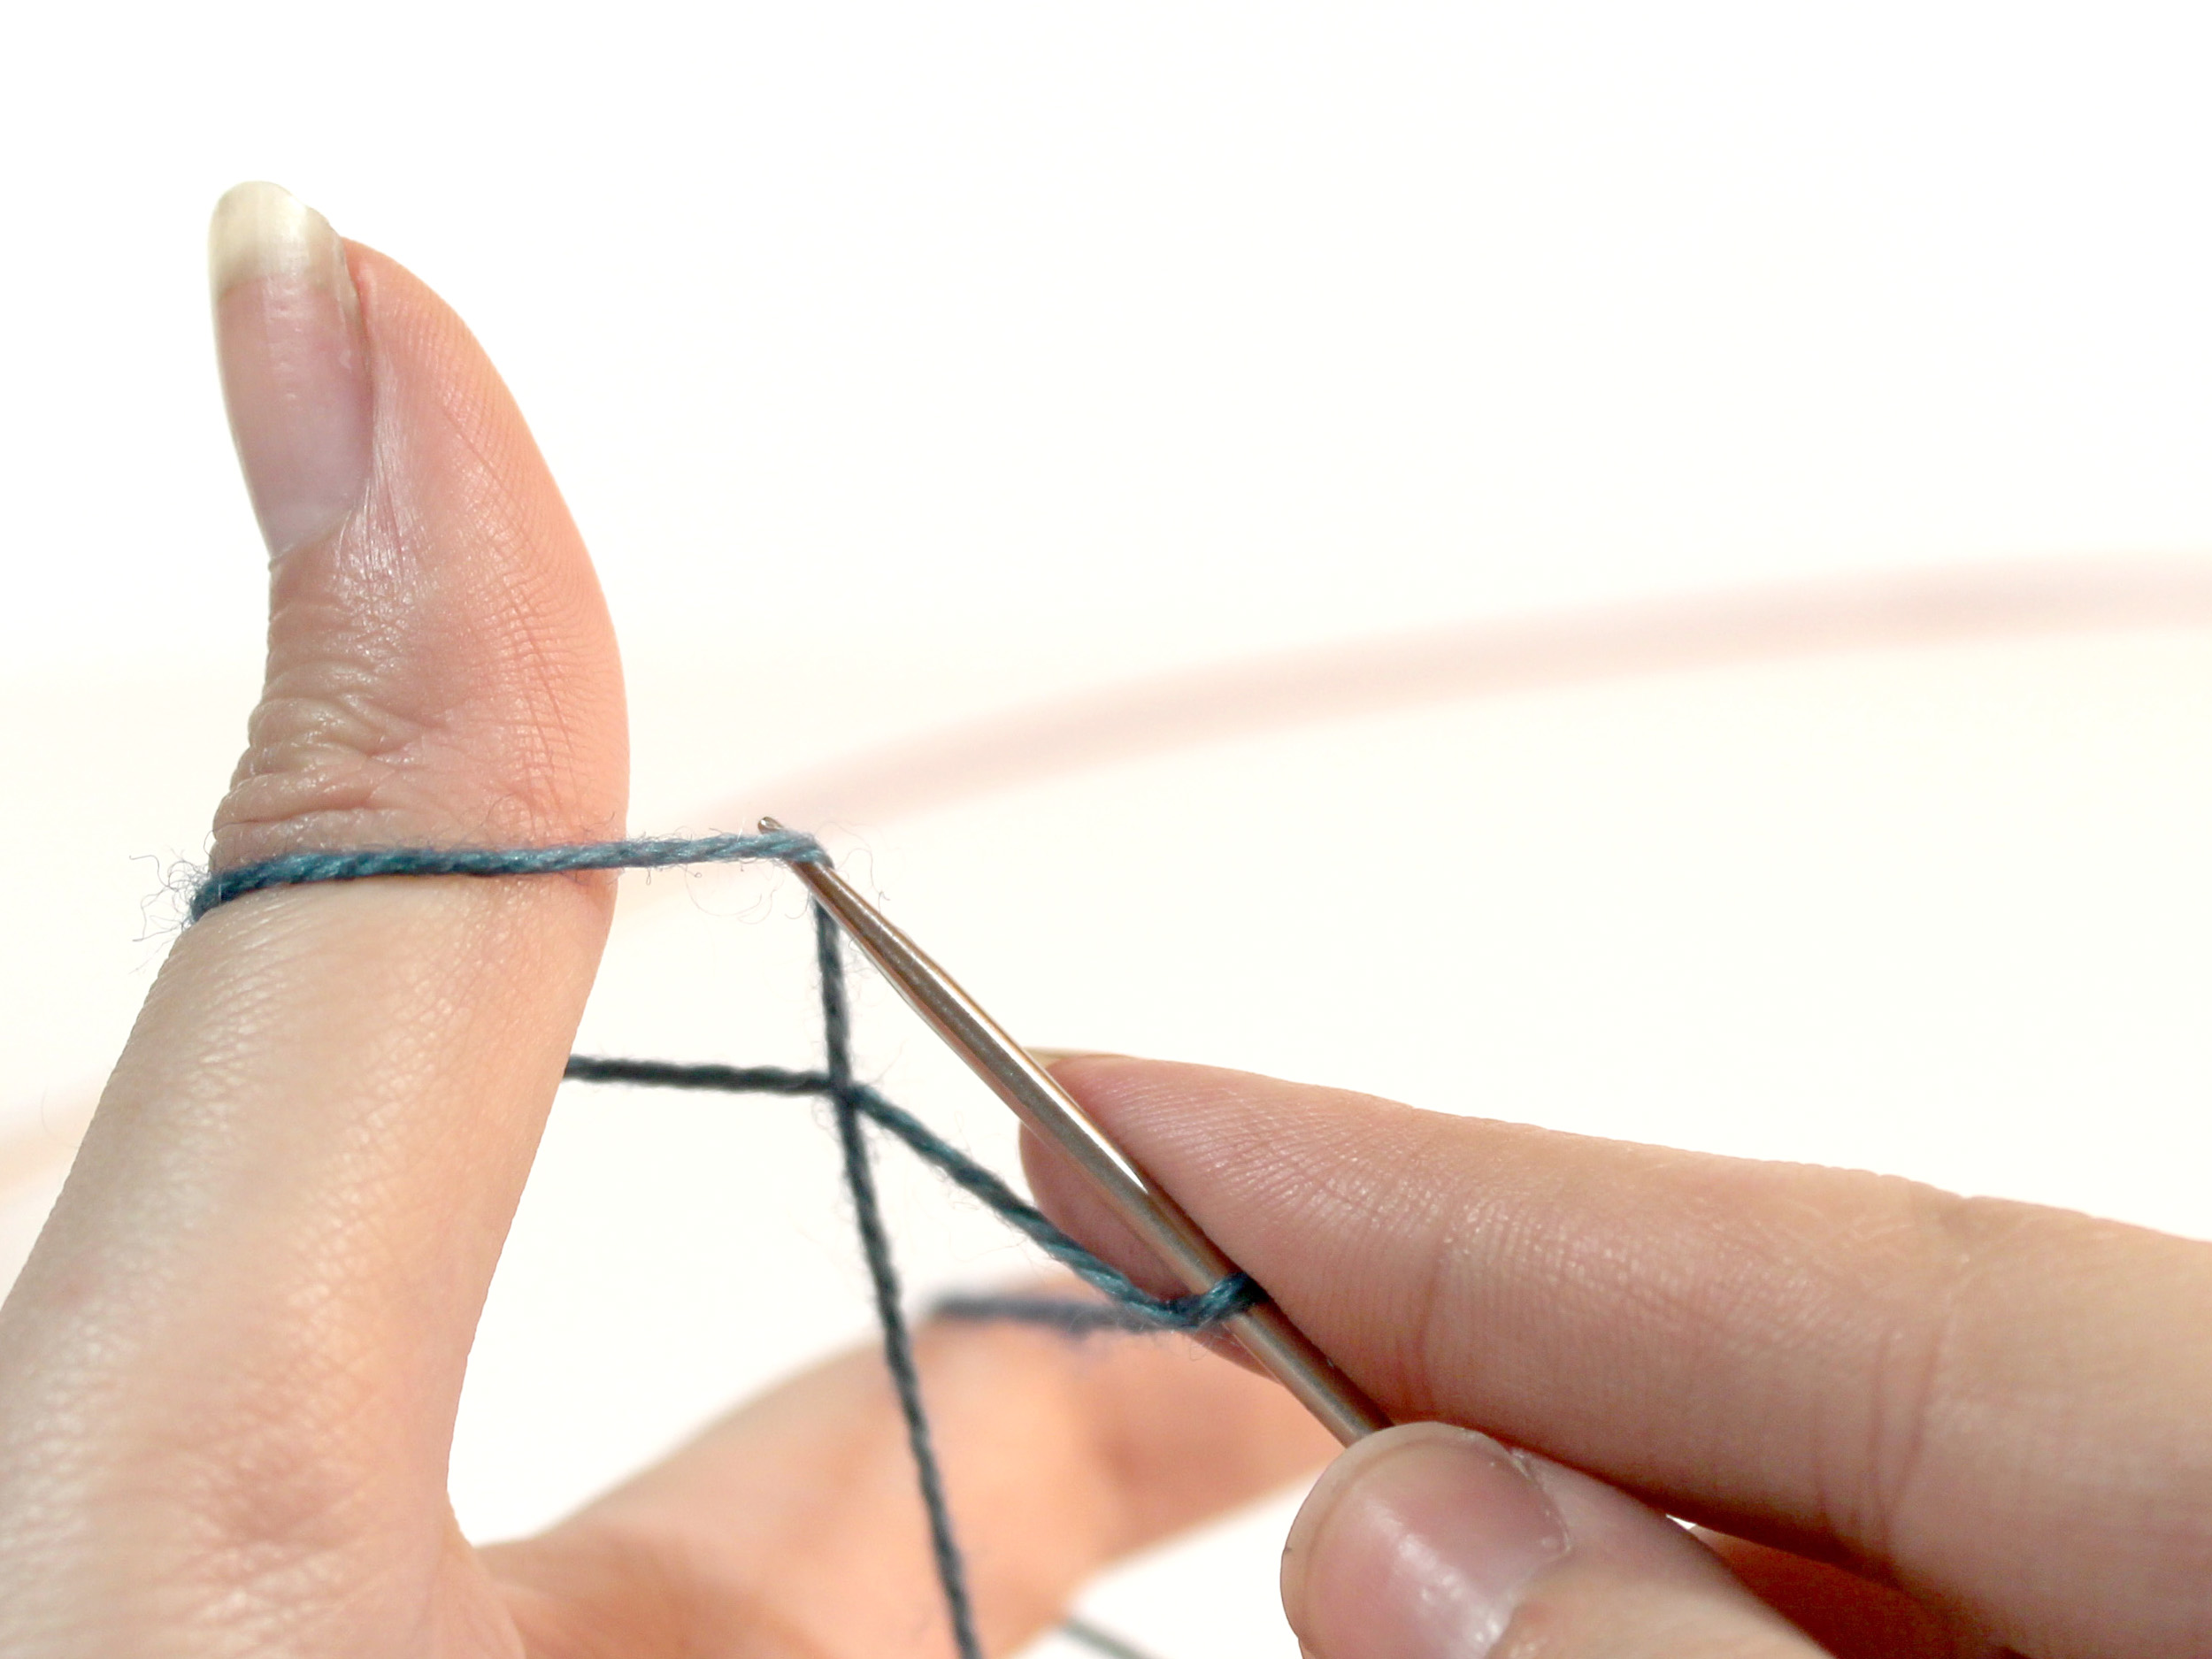 The knitting needle is lifting the strand of yarn that runs from the ring finger to the thumb on it's tip.